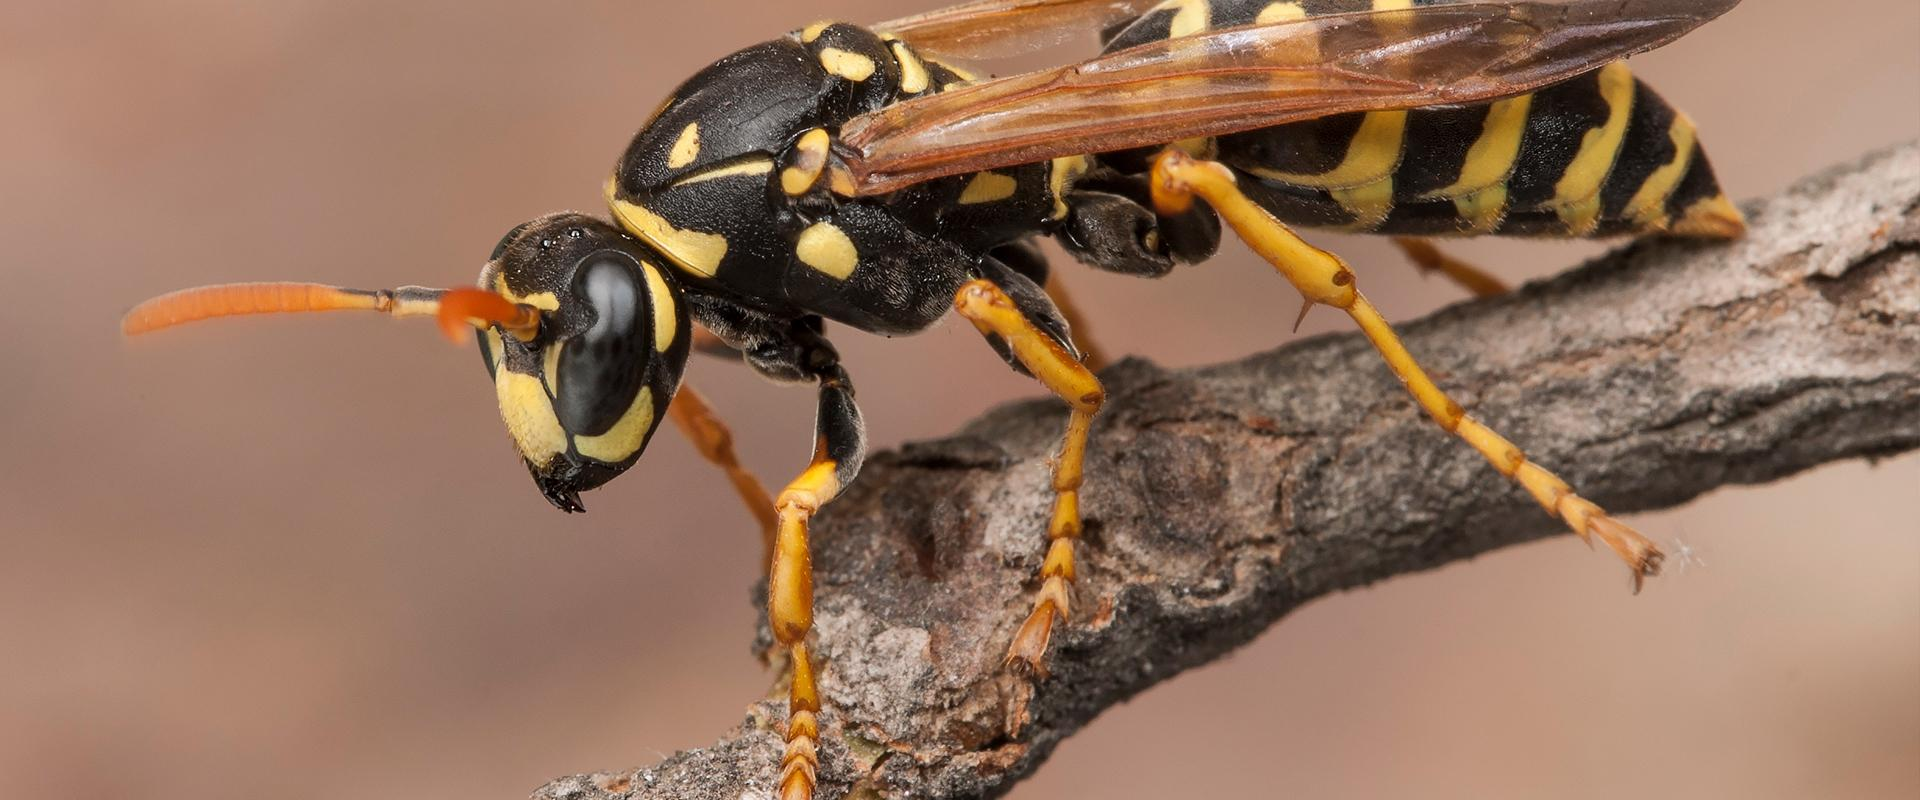 wasp on a branch